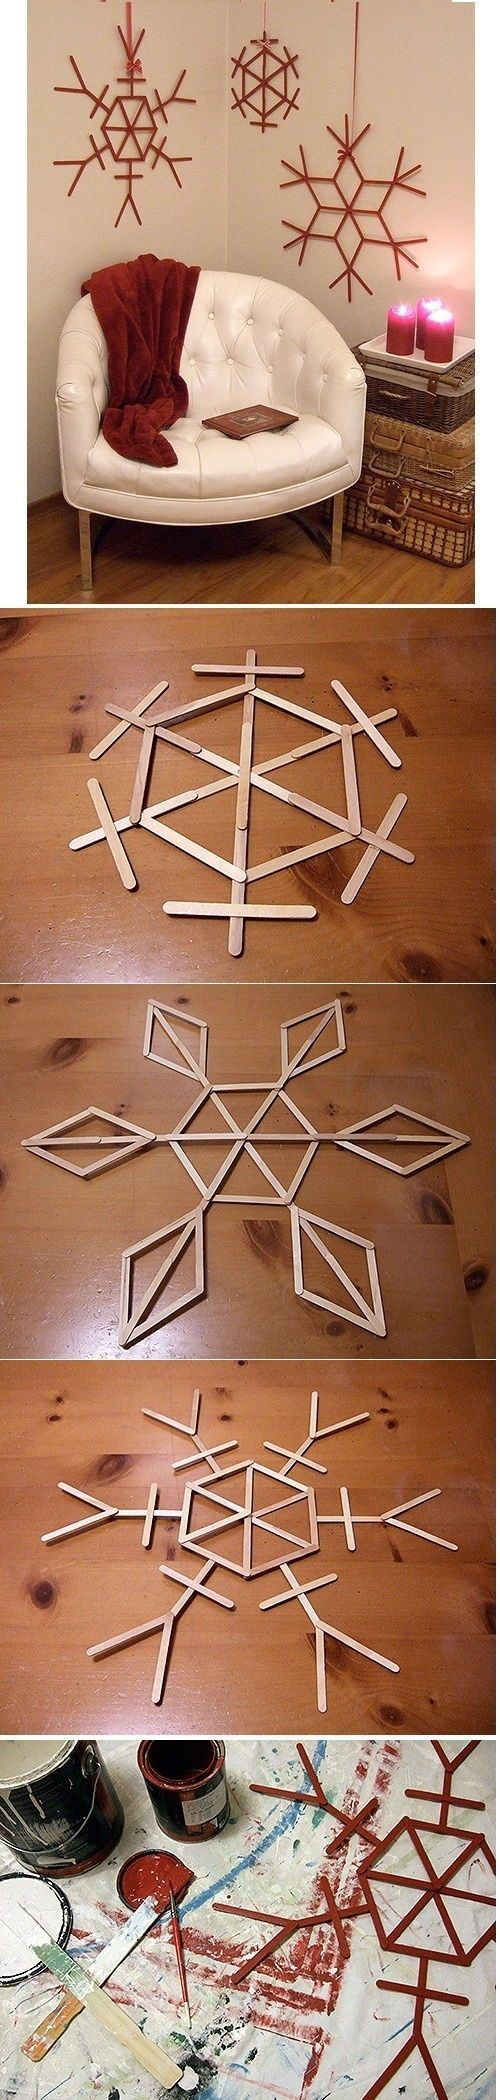 Make these snowflakes in white or teal for Eden's room or play room